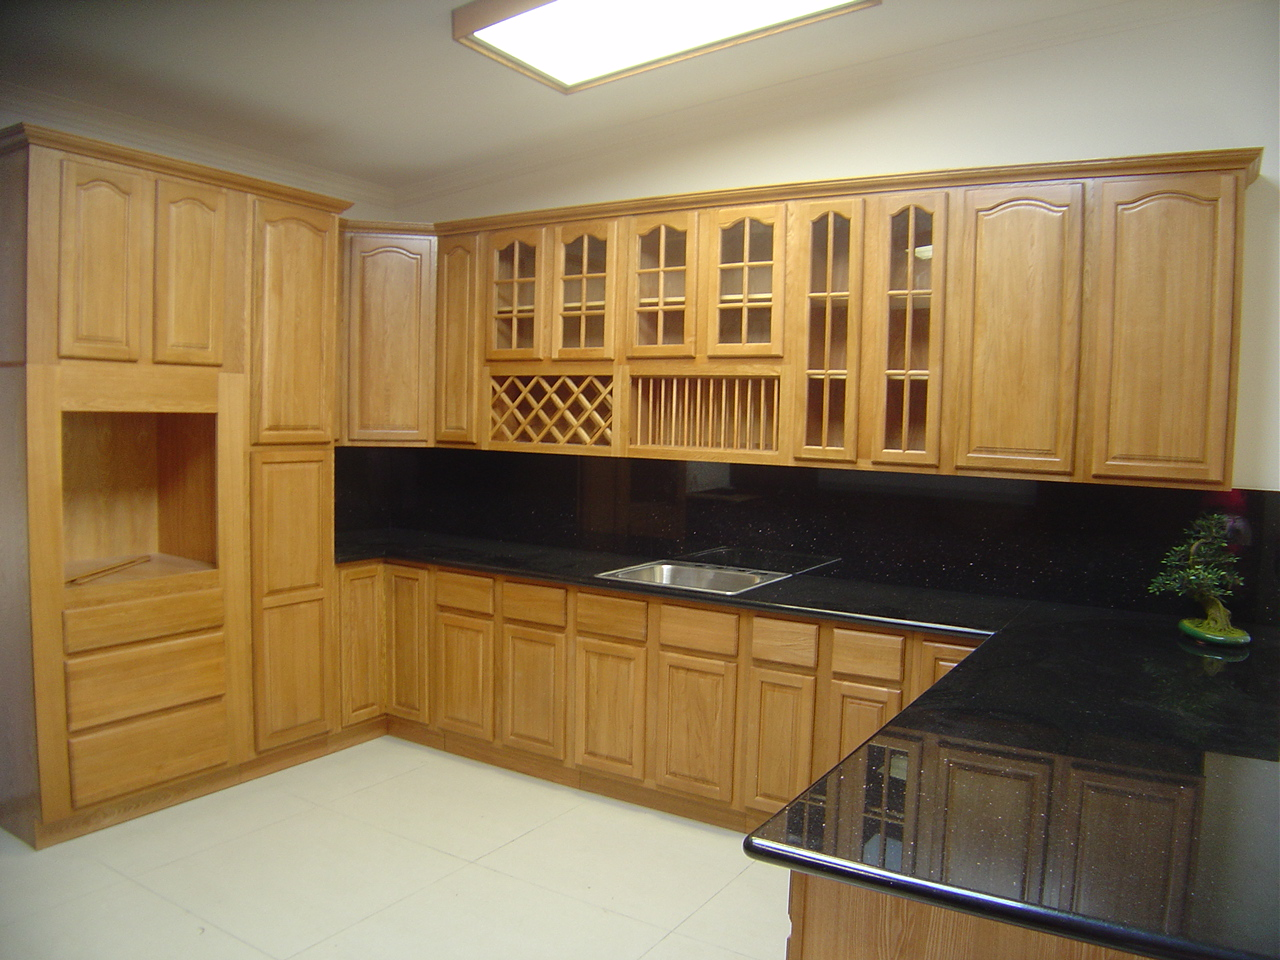 Kitchen Cabinet Plans Knotty Pine Cabinets Special Design And Decor Interior